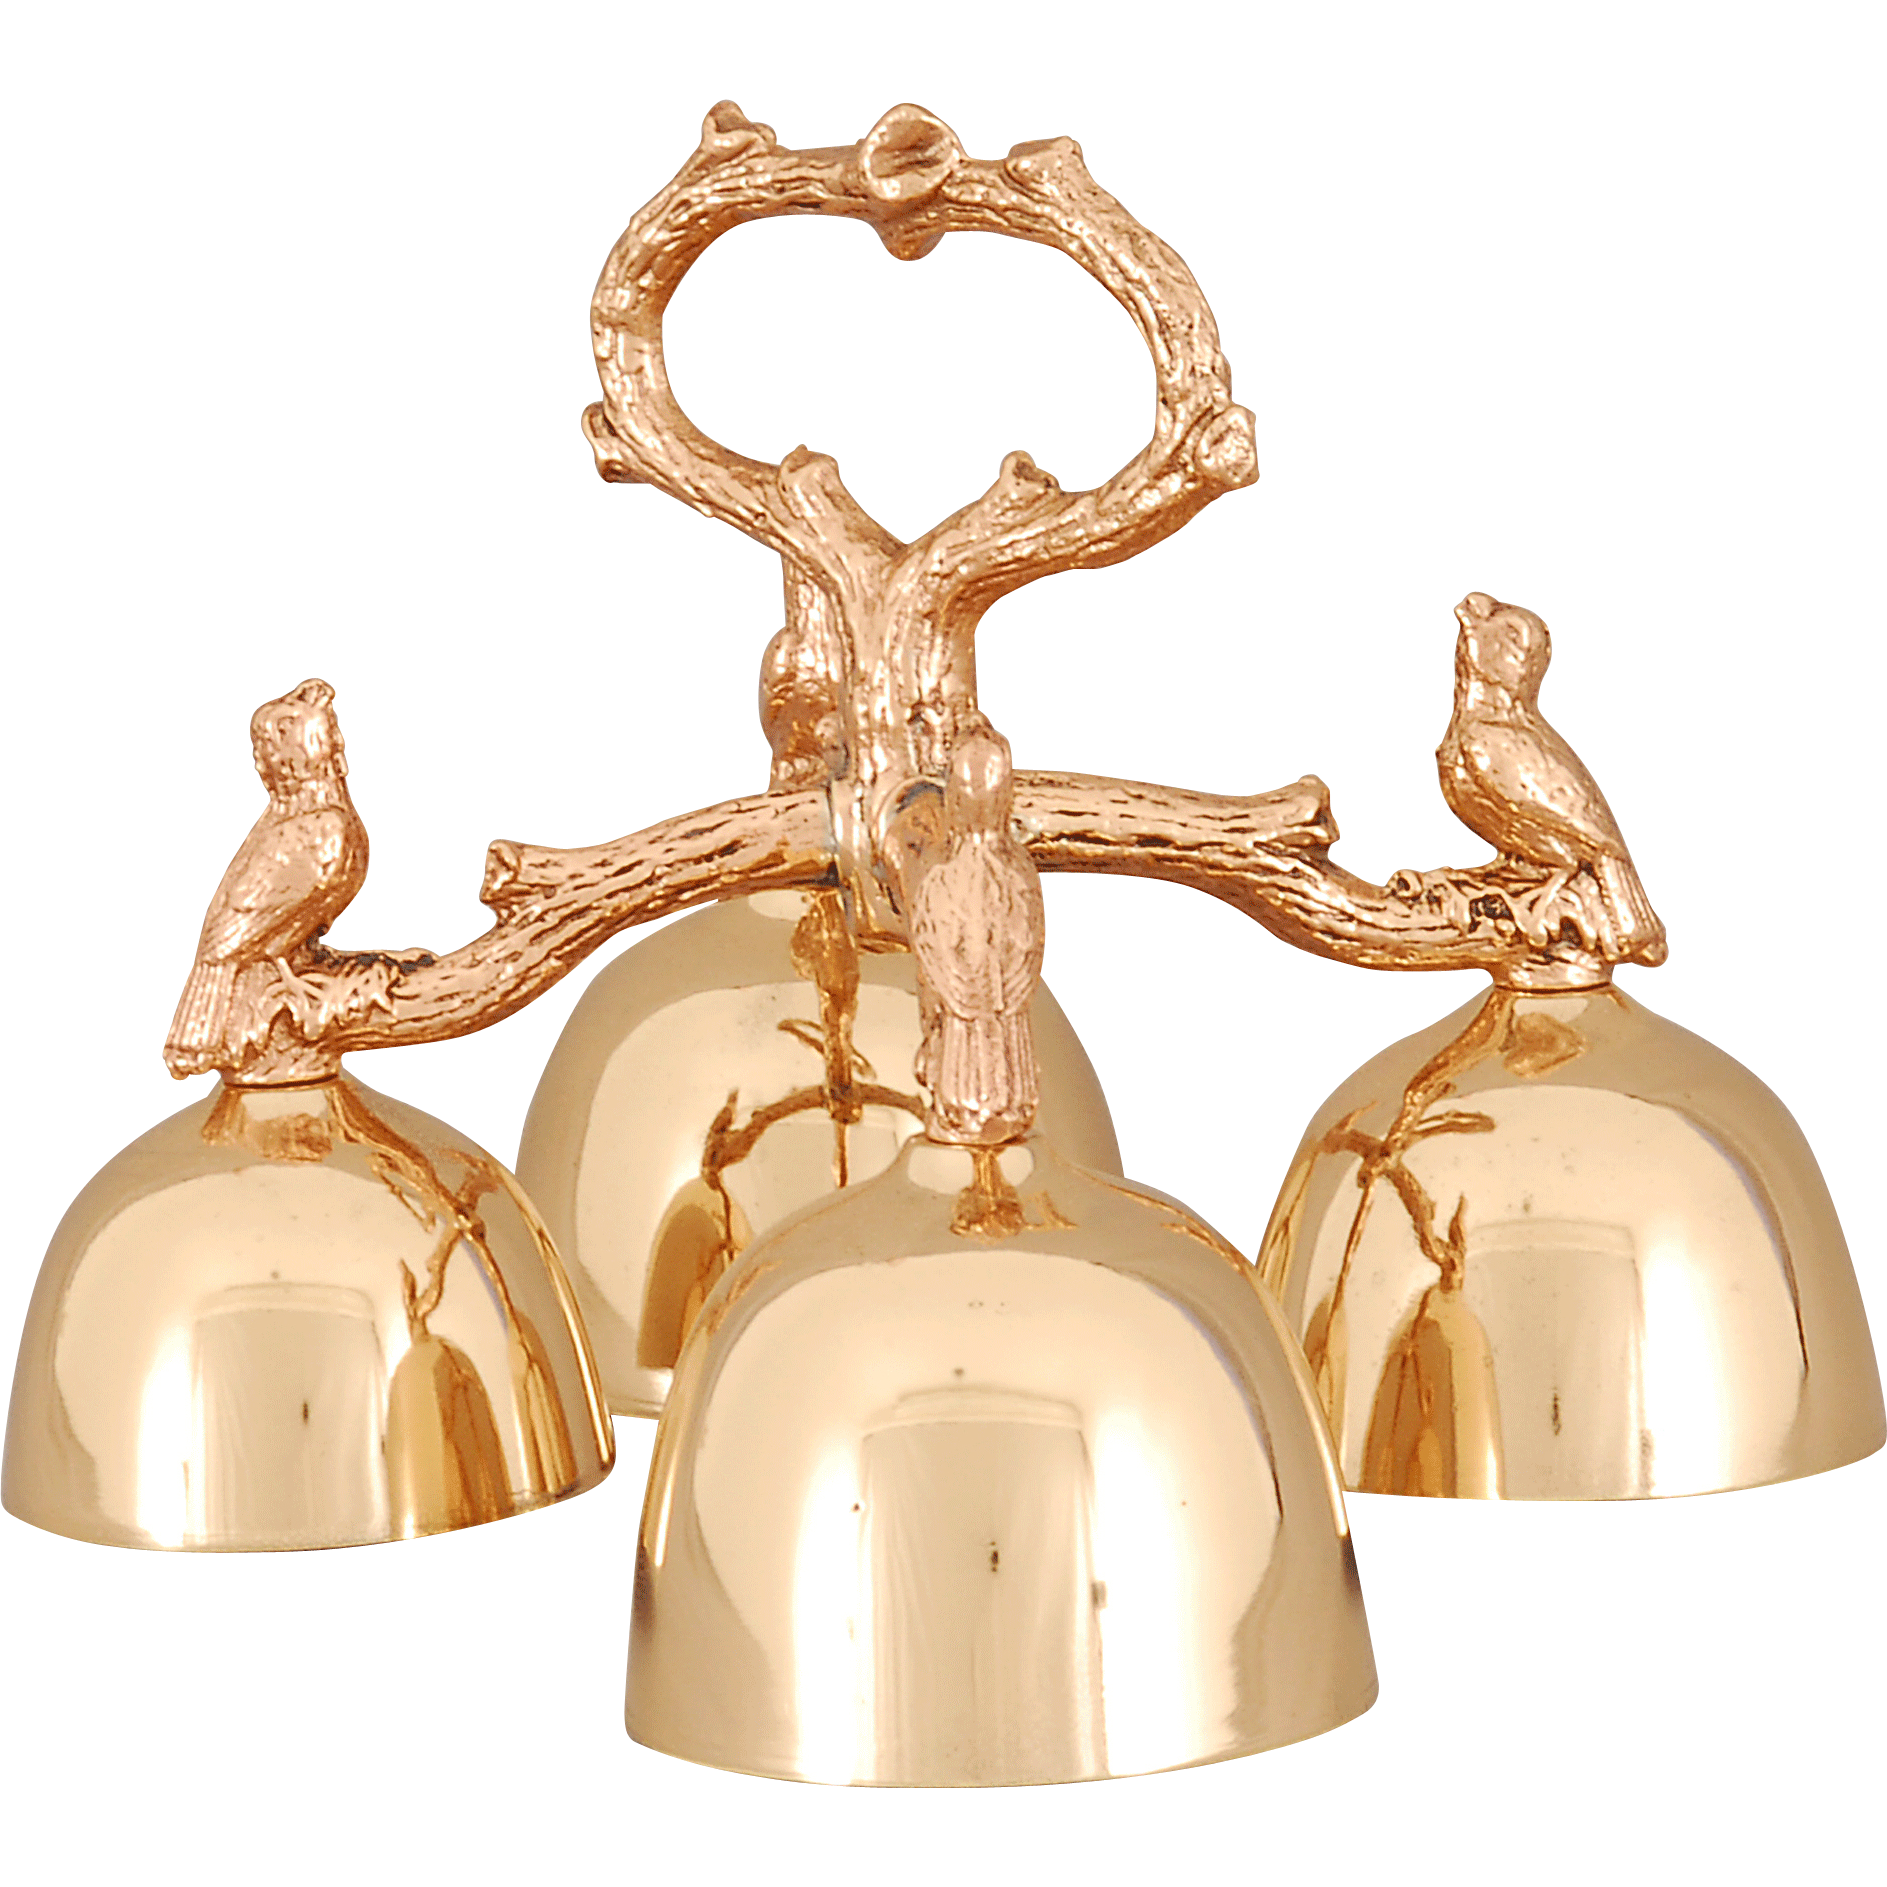 Sacristy Bells with Birds